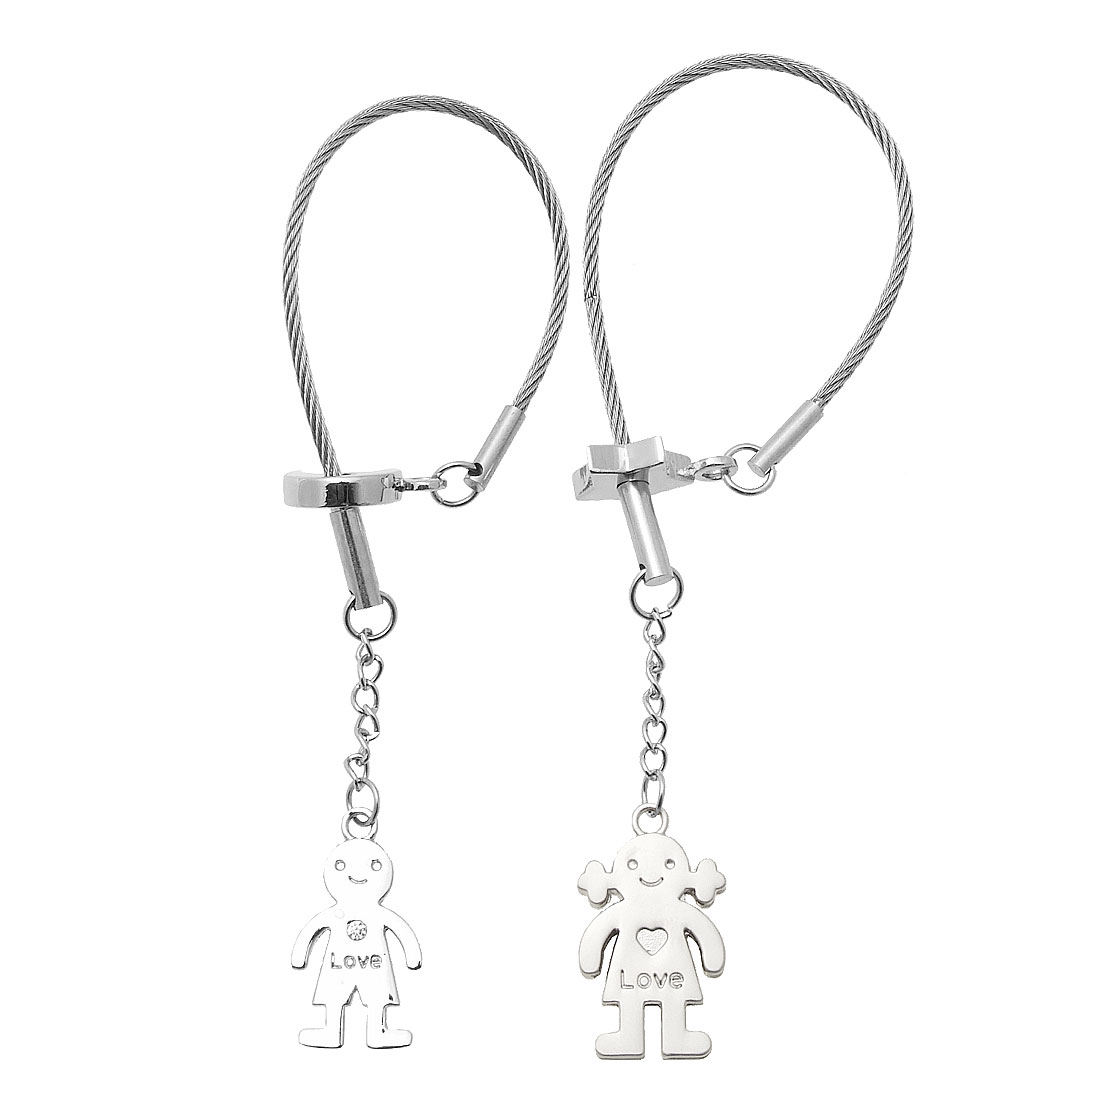 Novelty Metal Lover Pair Keychain Key Ring Keychain Charms